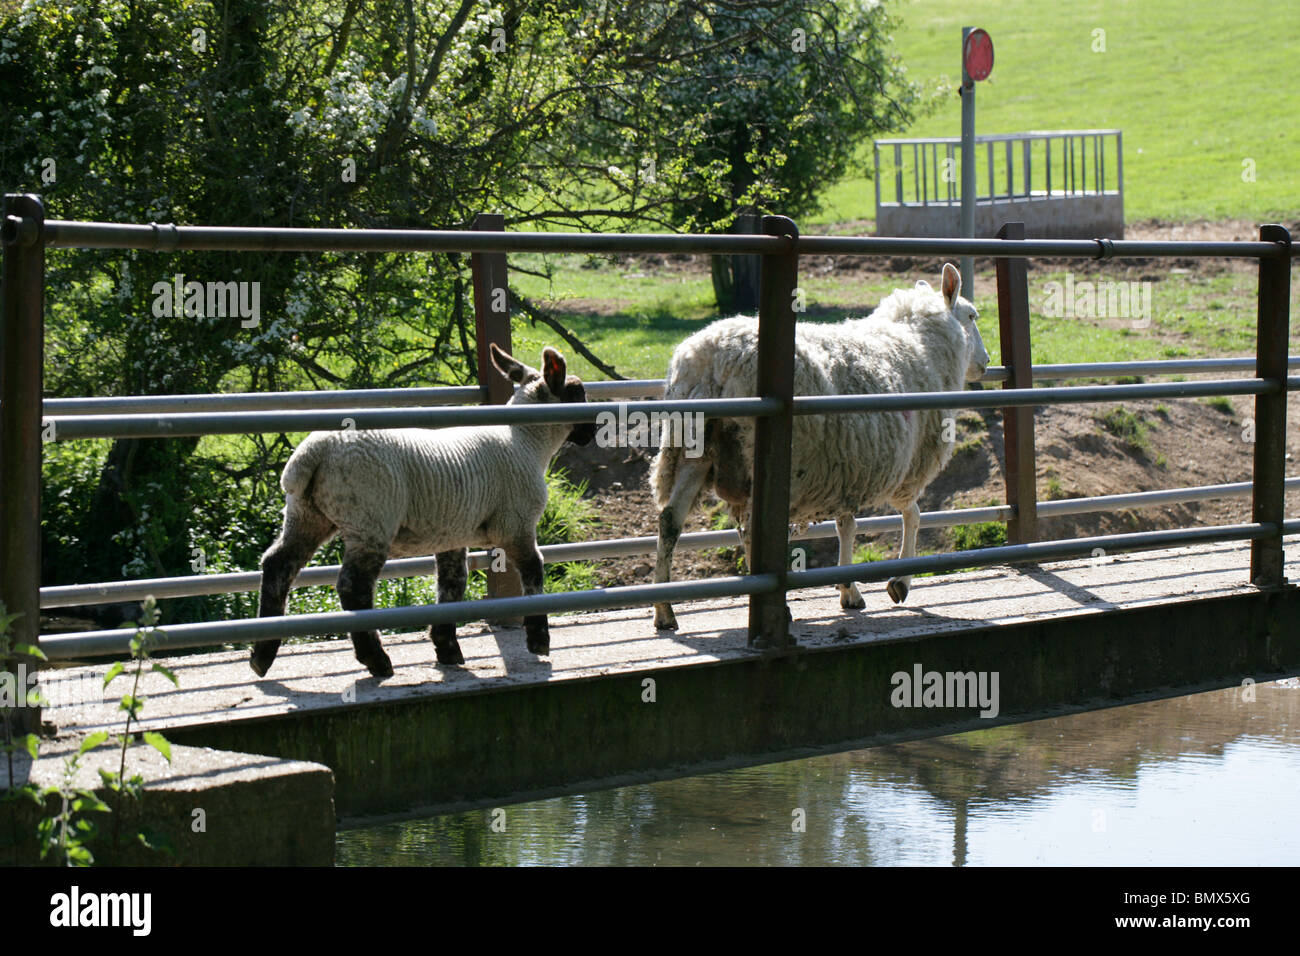 A Sheep with Her Lamb Crossing a River Bridge - Stock Image